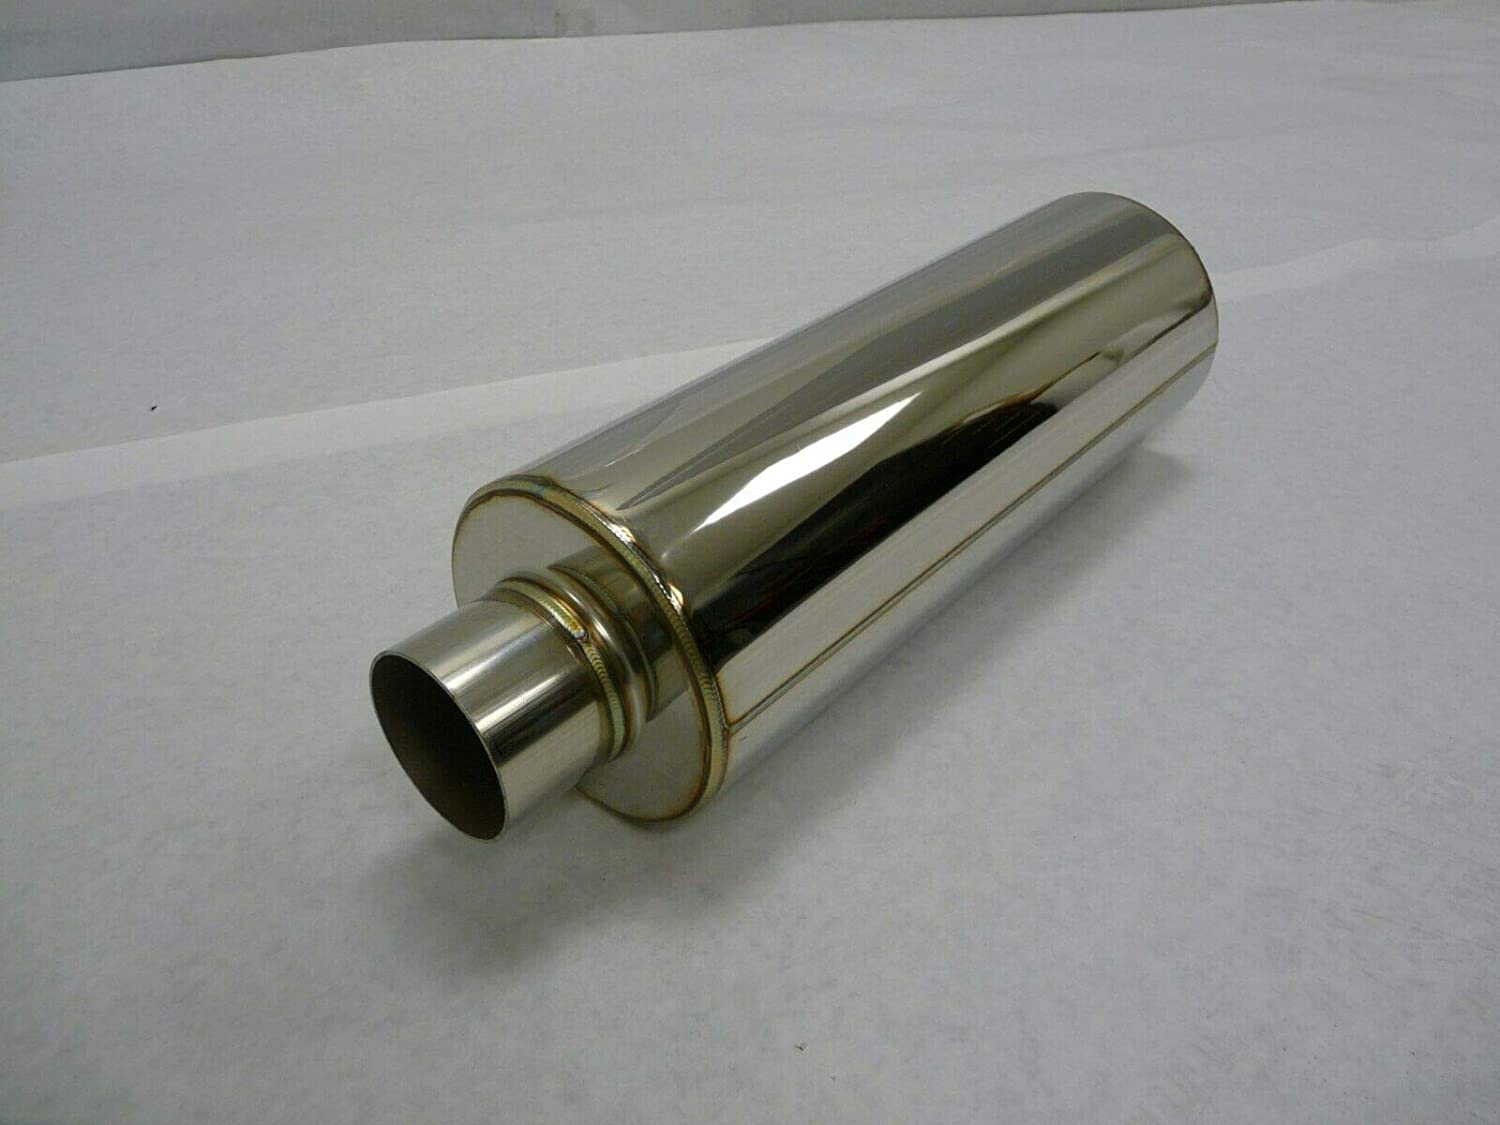 OBX Performance Stainless SUV Welded-On Resonator Inlet Outlet 2.5 18 Length